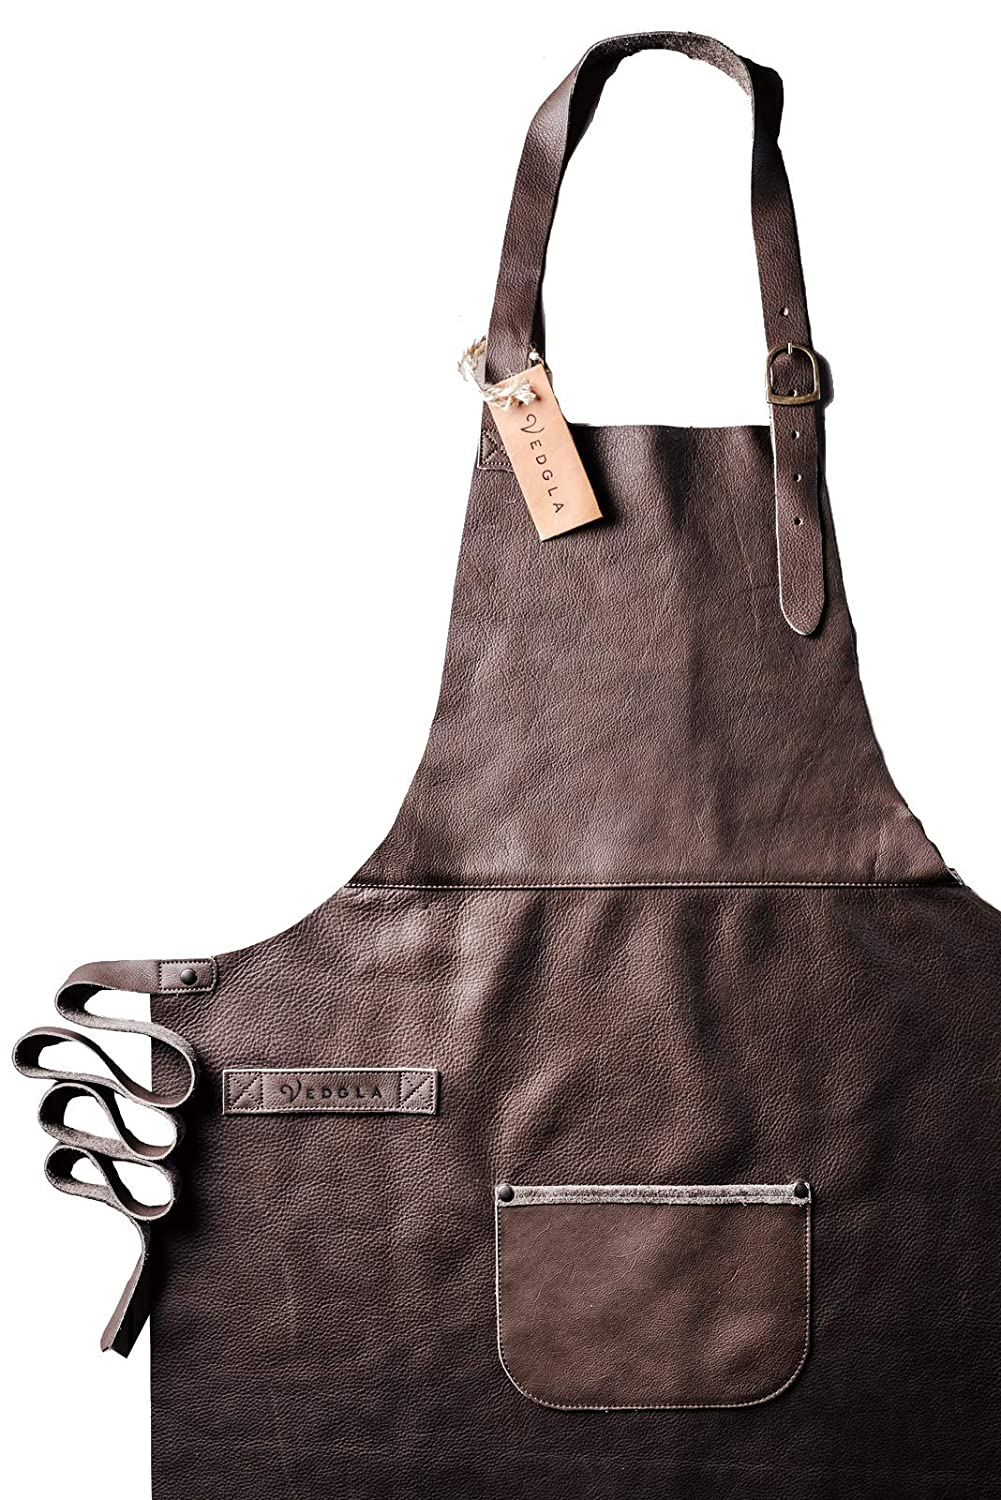 Vedgla leather apron, grill apron, cook's apron, waiter's apron - apron made of high quality leather with adjustable straps and comfortable fit, 84 cm x 70 cm, in brown colour cook's apron